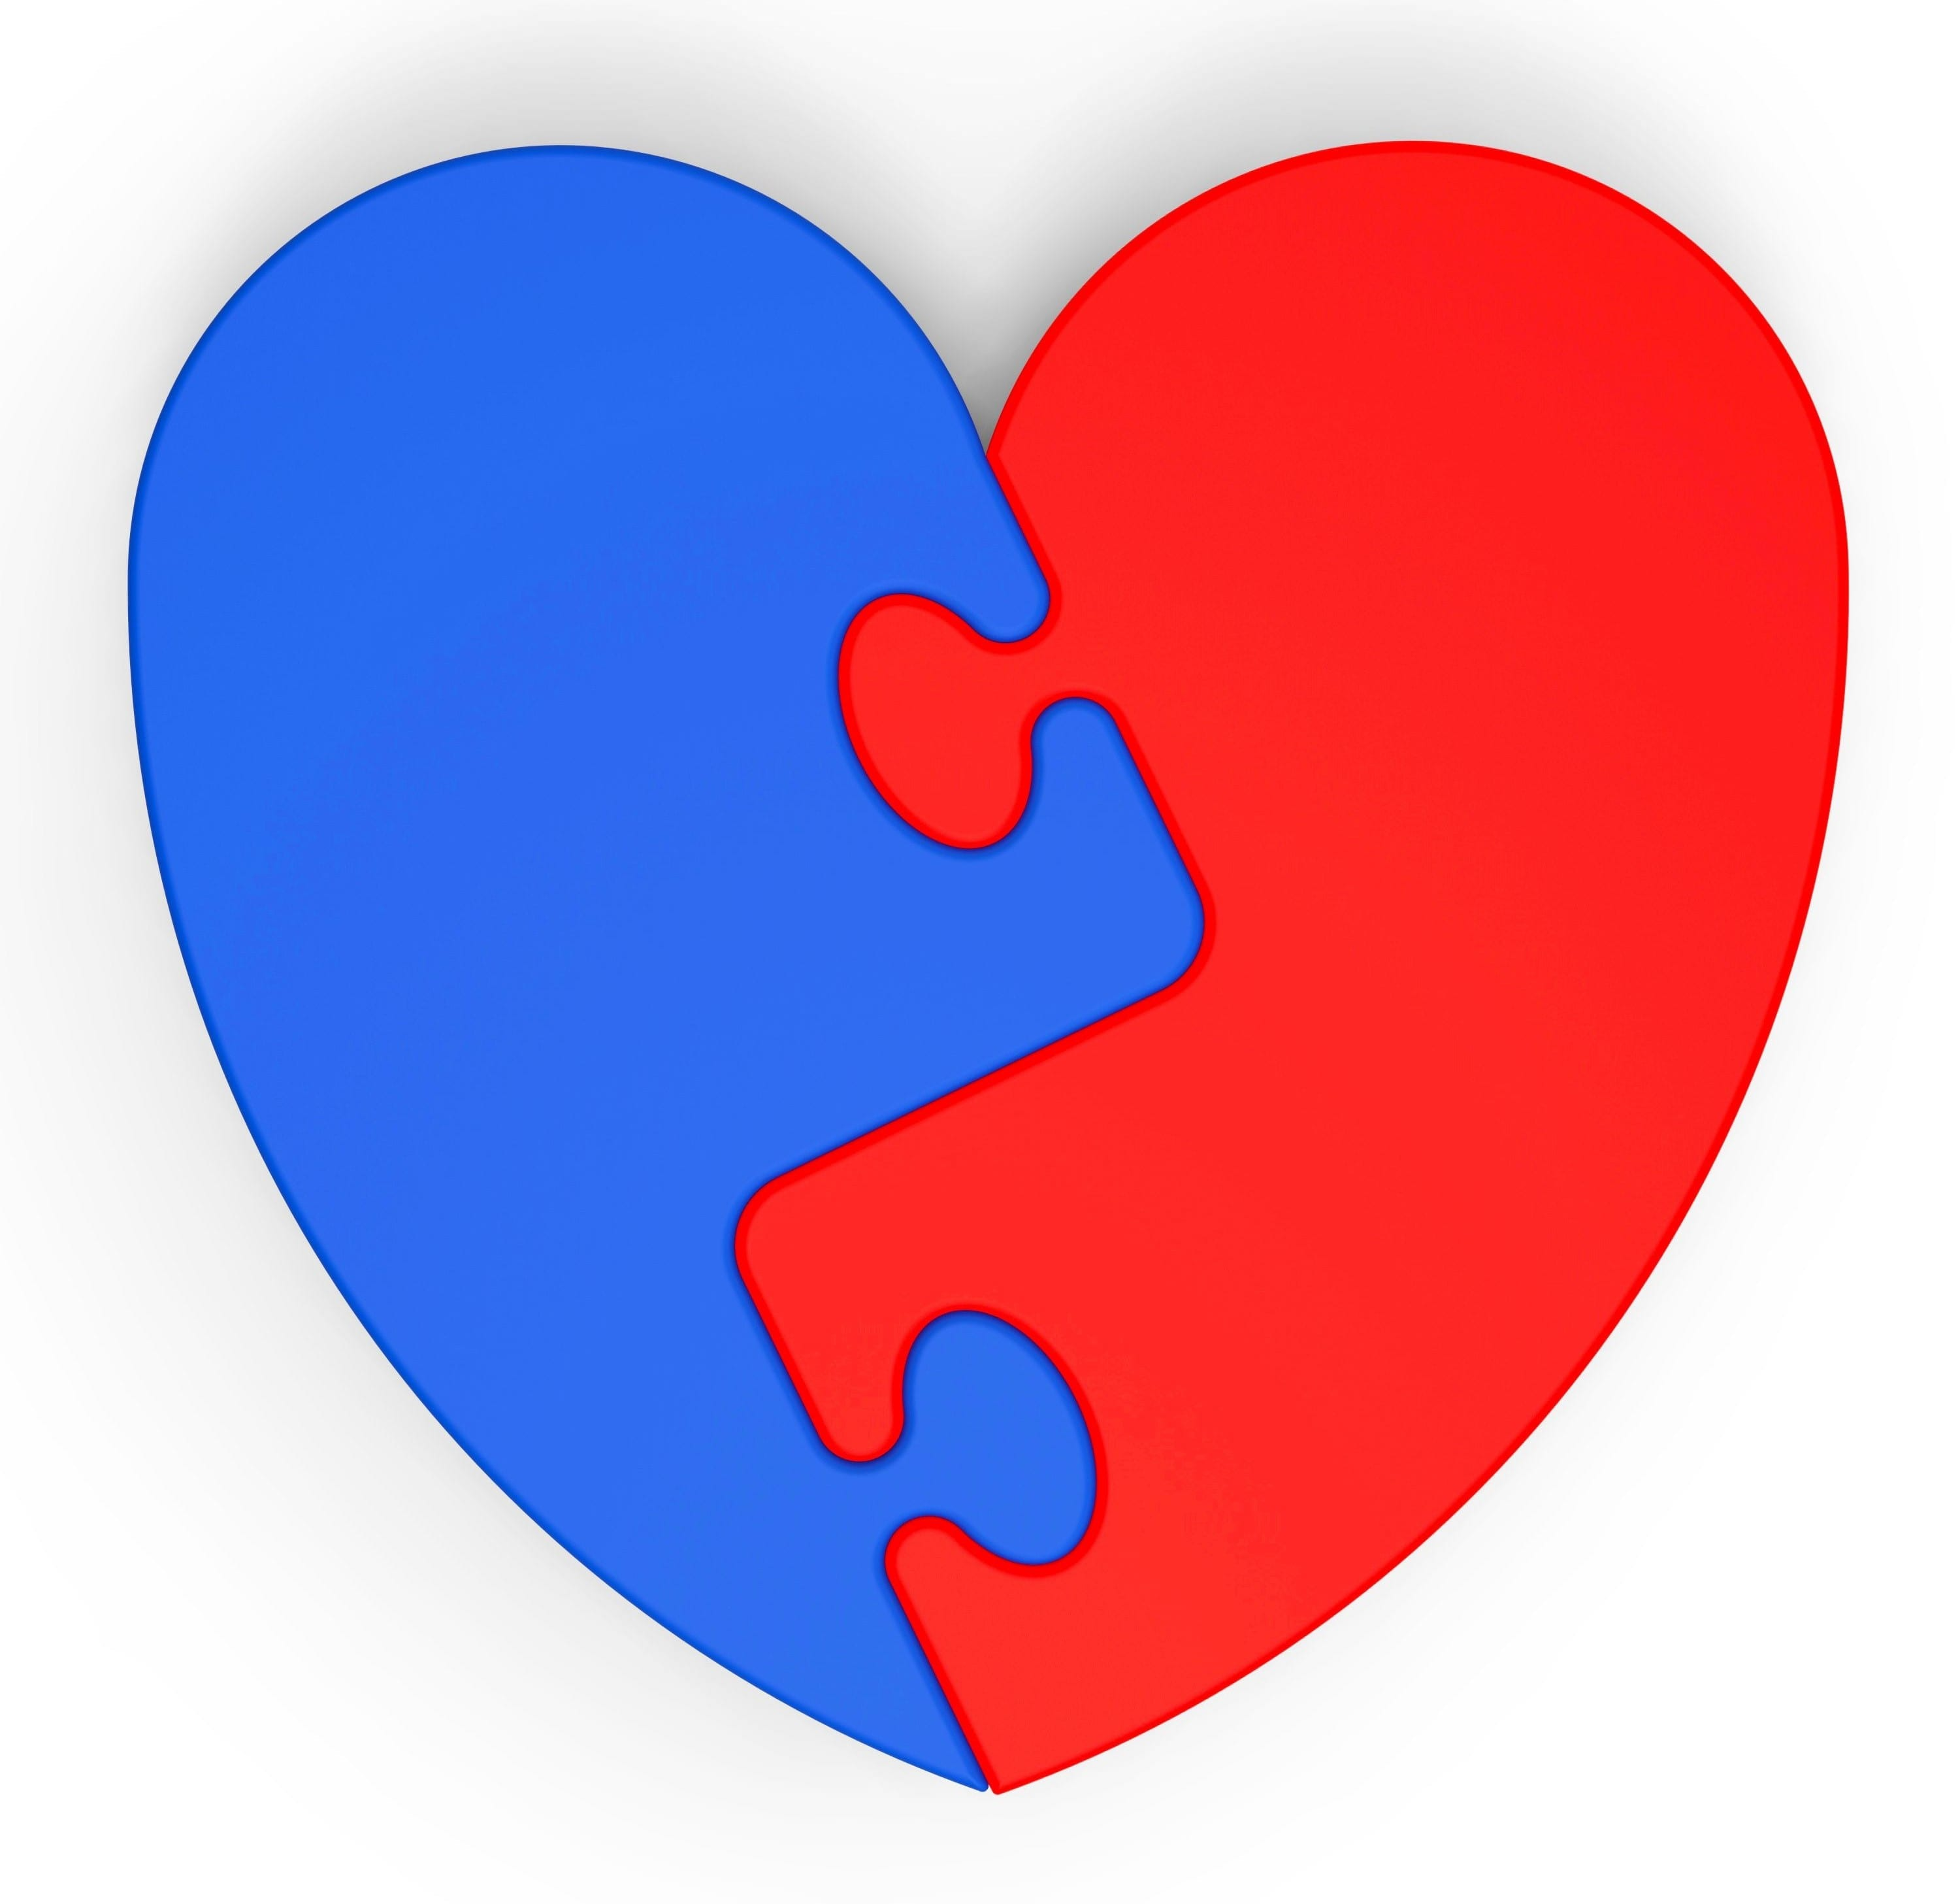 Two-Colored Heart Showing Love Complement Or Couple